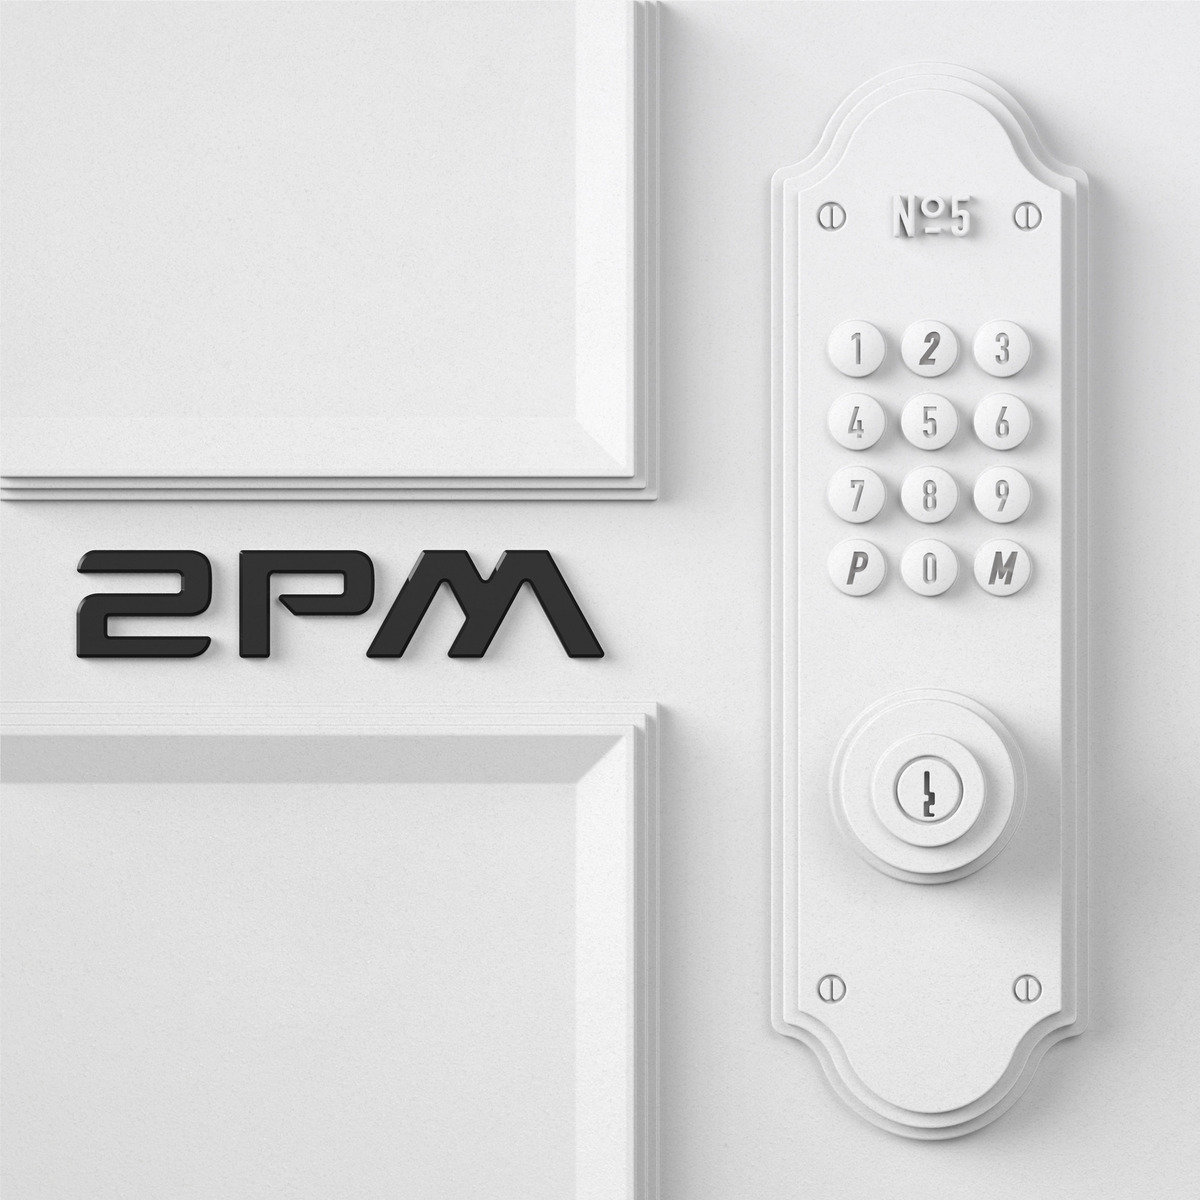 2PM - Album Vol.5 [NO.5]_DAY ver.(White)_GD00019606